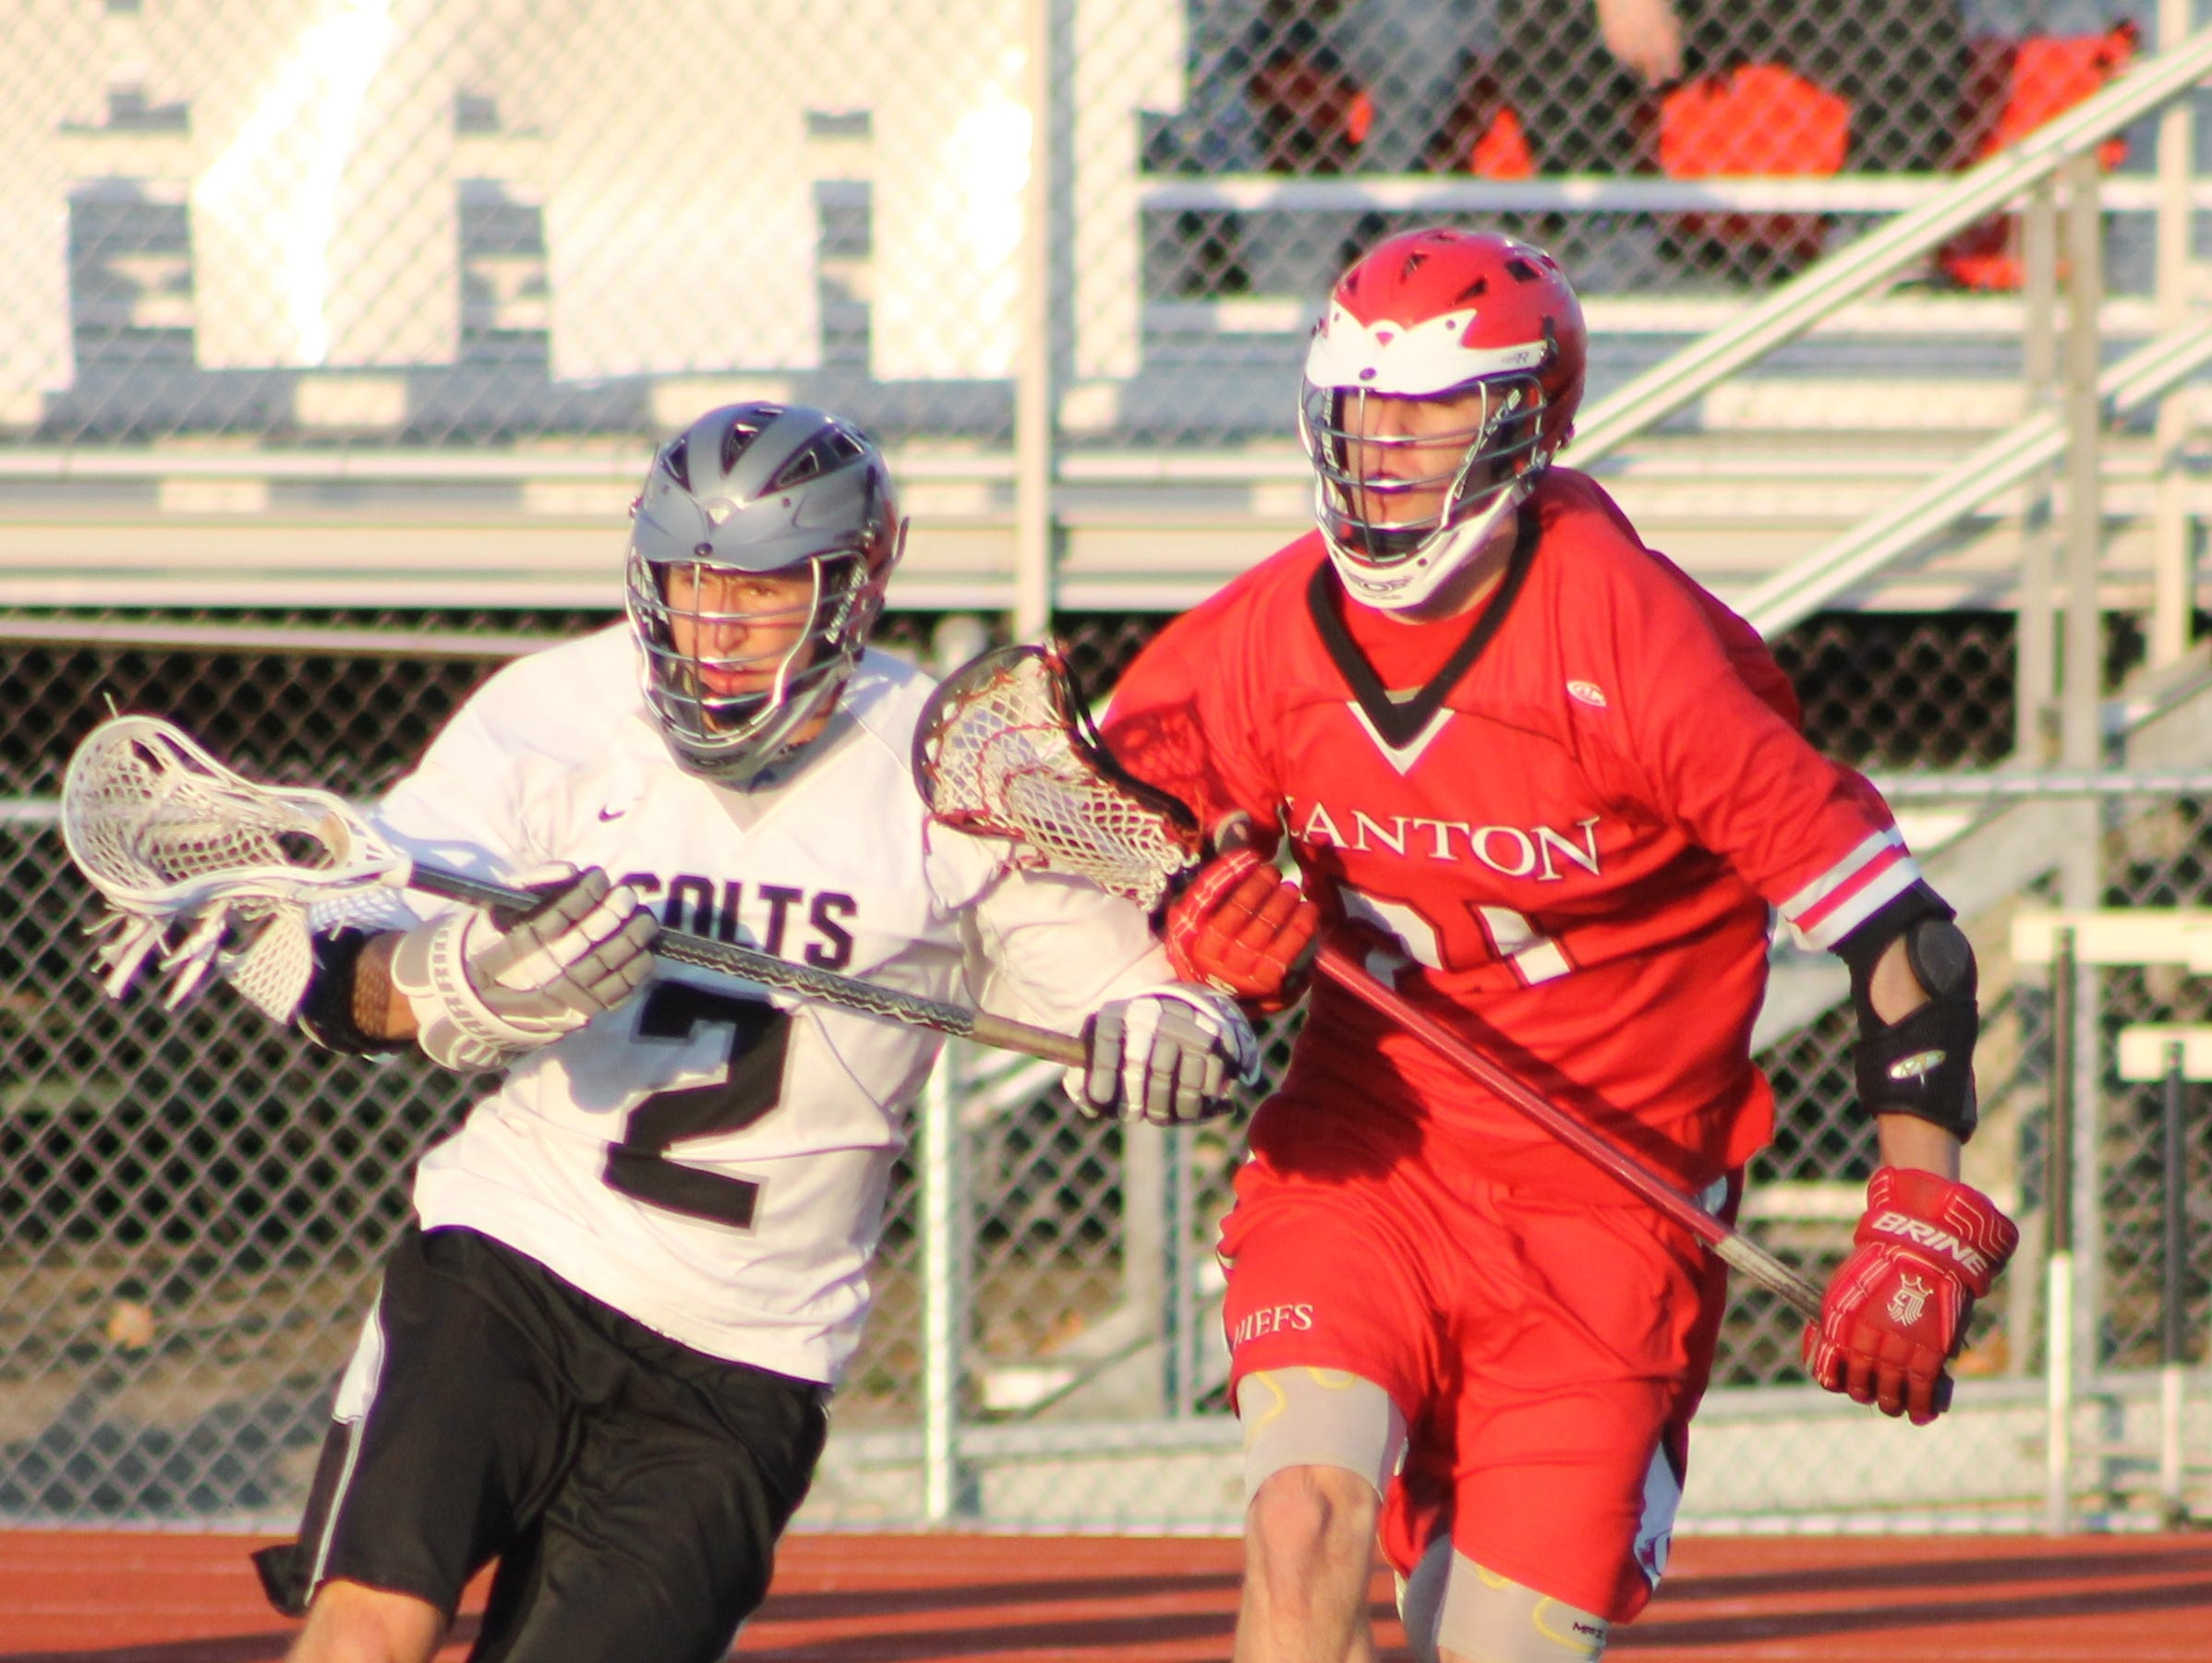 Shadowing each other during Thursday's Division 1 regional boys lacrosse contest are Troy's Andrew Hadad (No. 2) and Canton's Jay Krebs (No. 21).